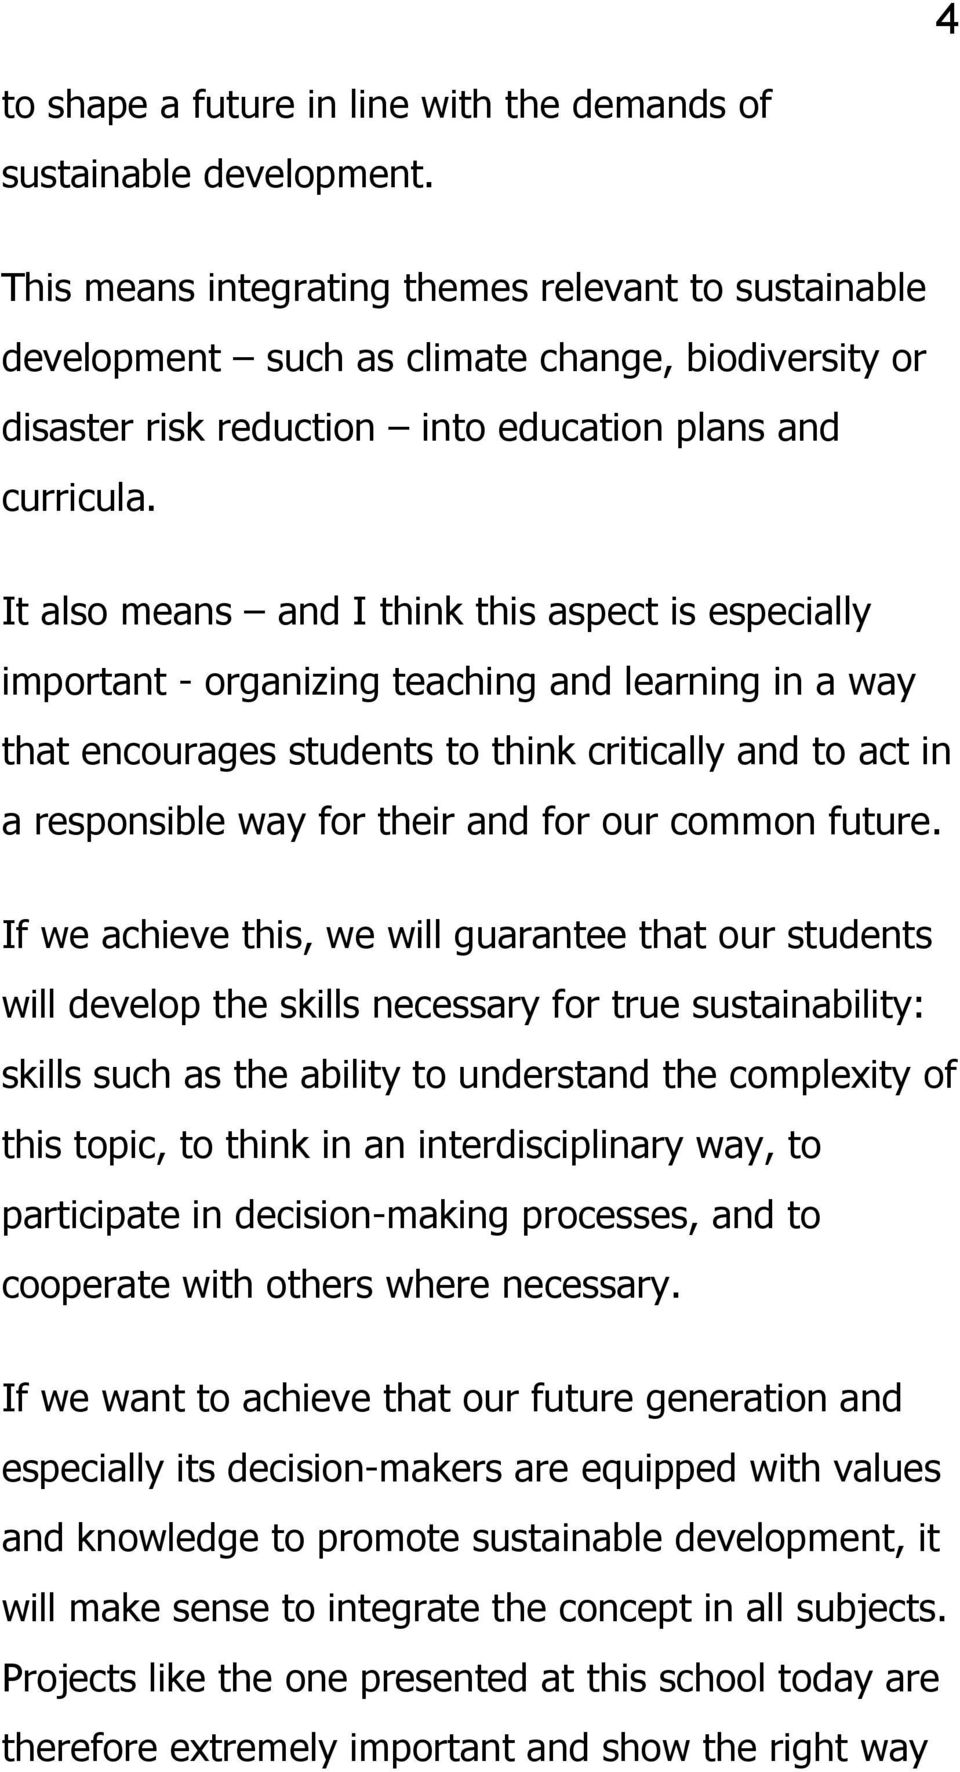 It also means and I think this aspect is especially important - organizing teaching and learning in a way that encourages students to think critically and to act in a responsible way for their and